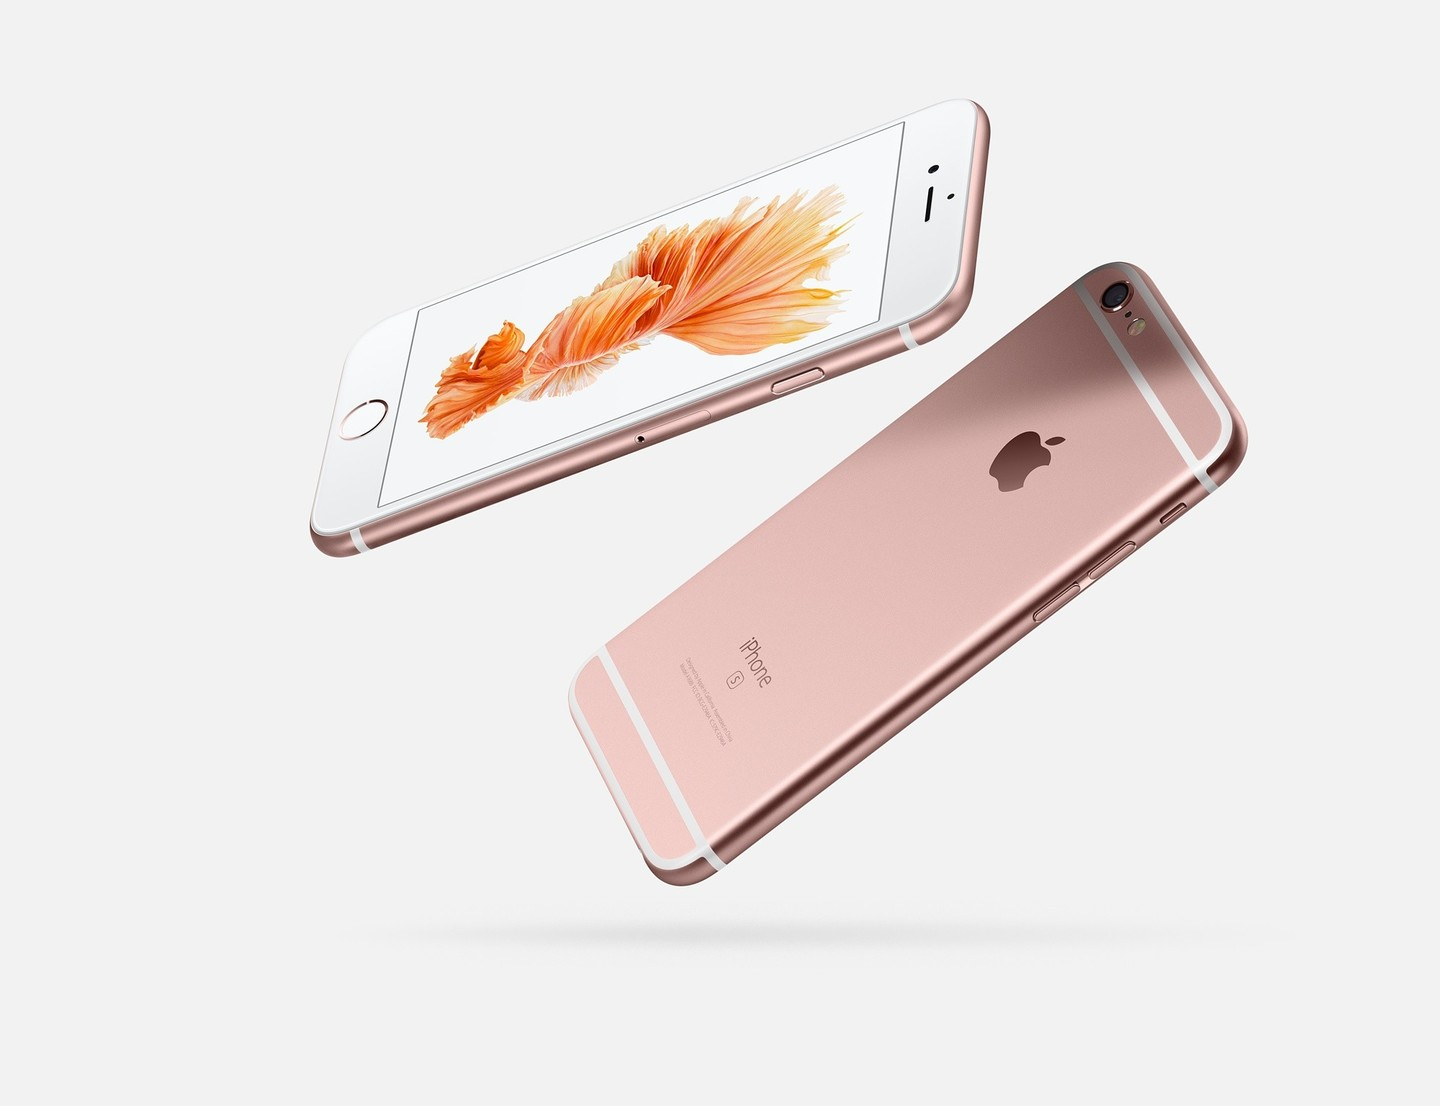 A rose gold iPhone 6s